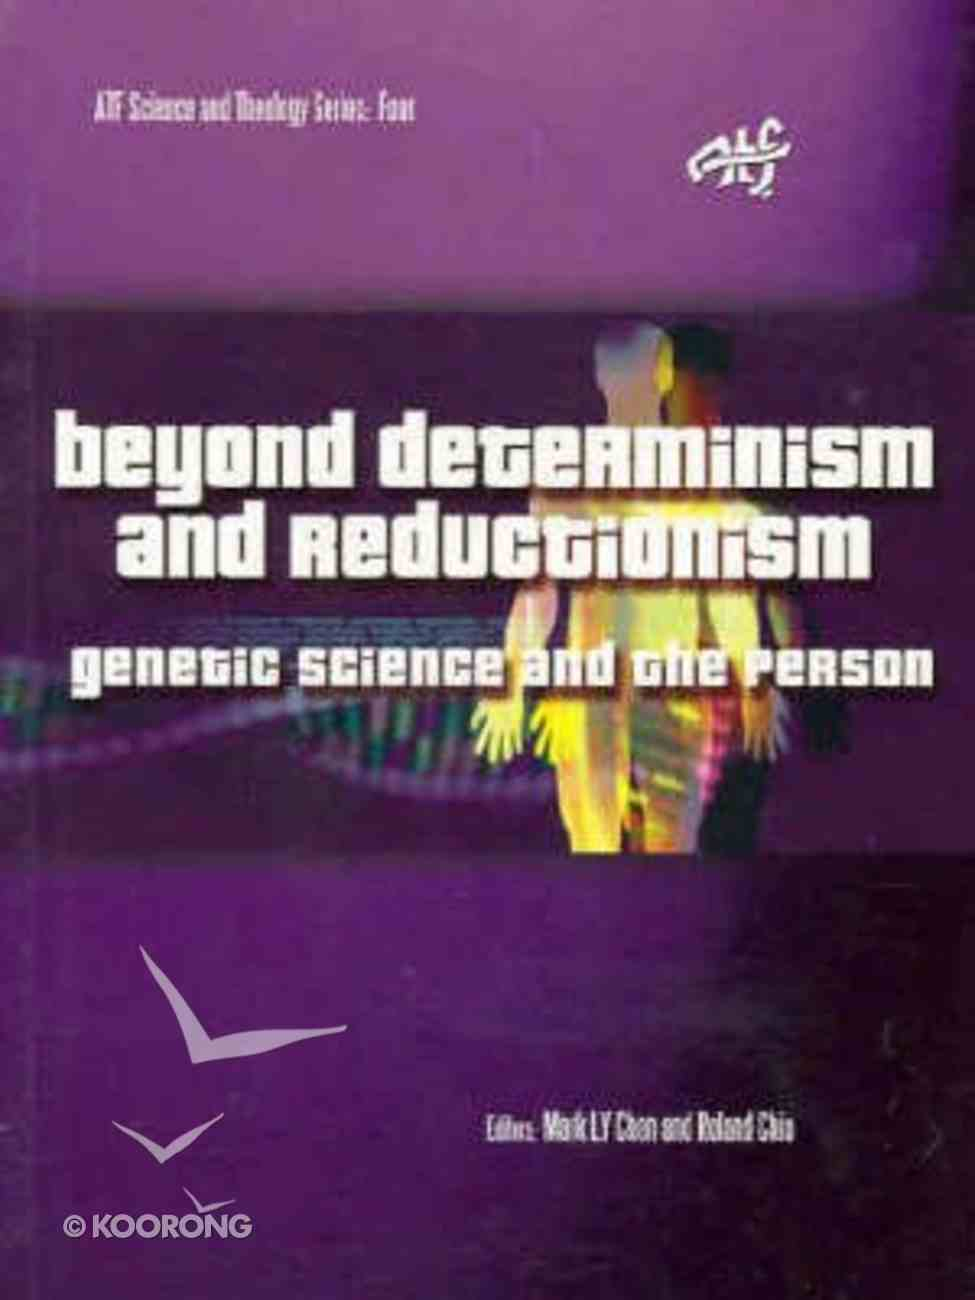 Beyond Determinism and Reductionism Paperback